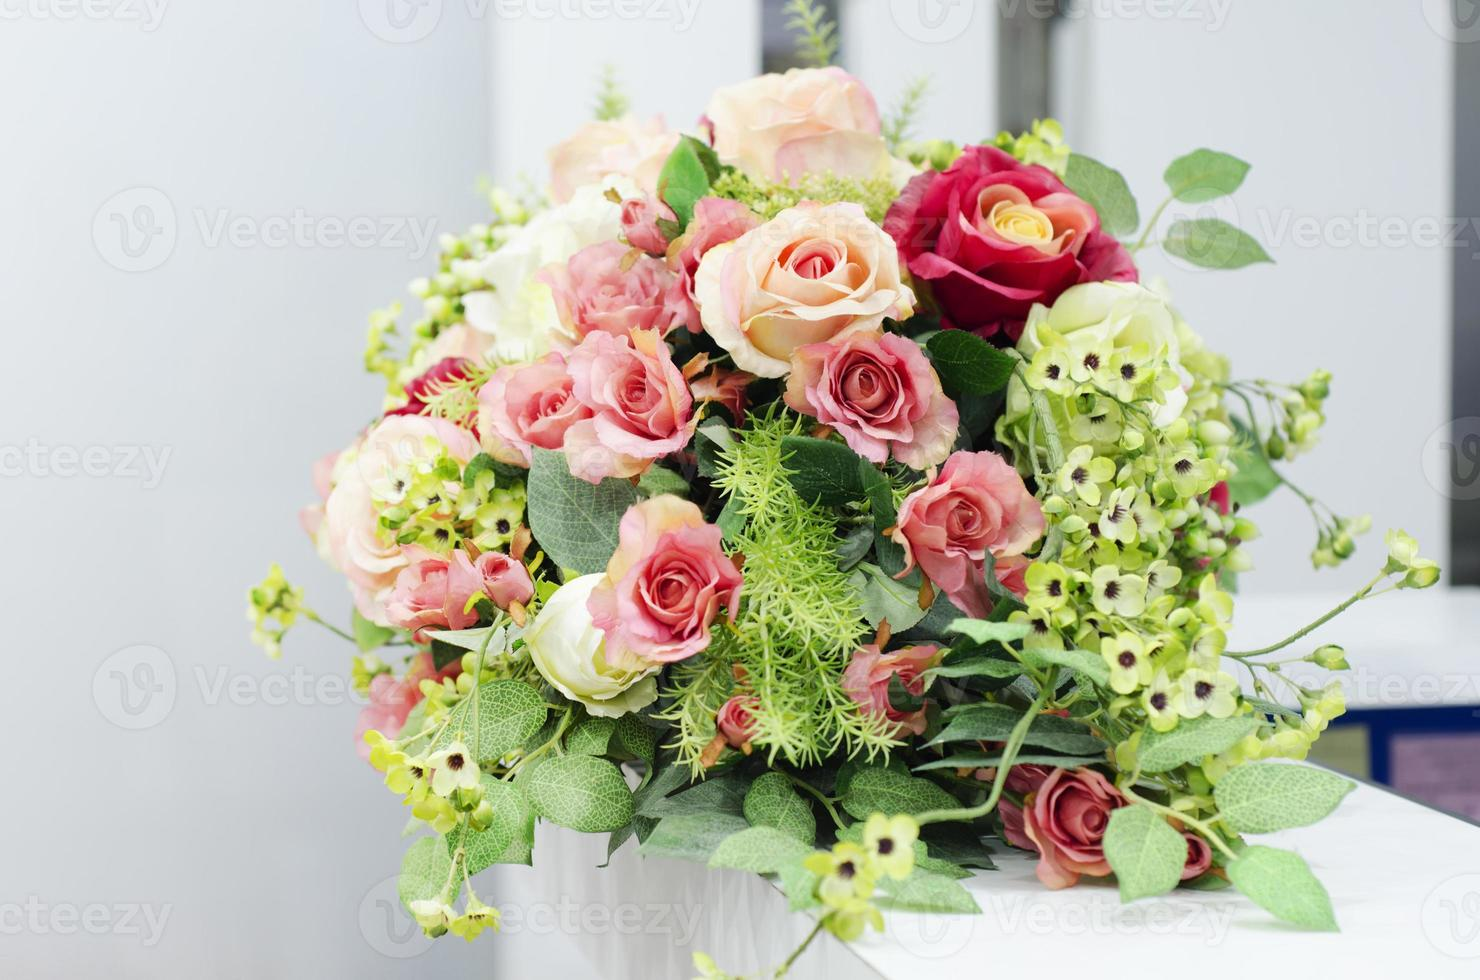 Colorful flower bouquet on the white table photo